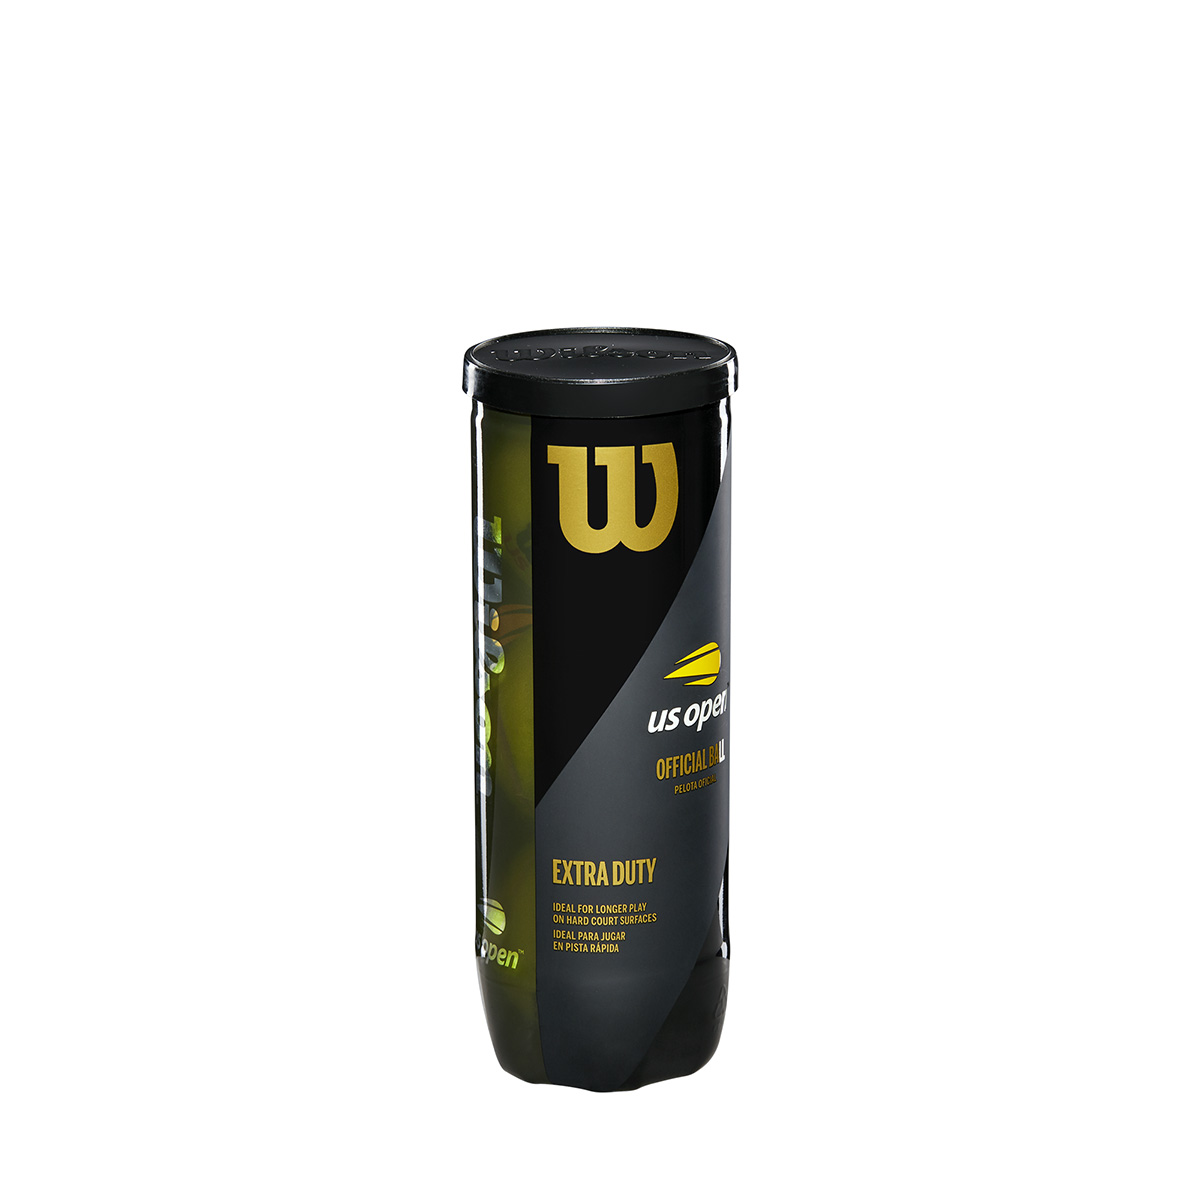 WRT106200_US_Open_Official_Extra_Duty_3ball_Can_Side